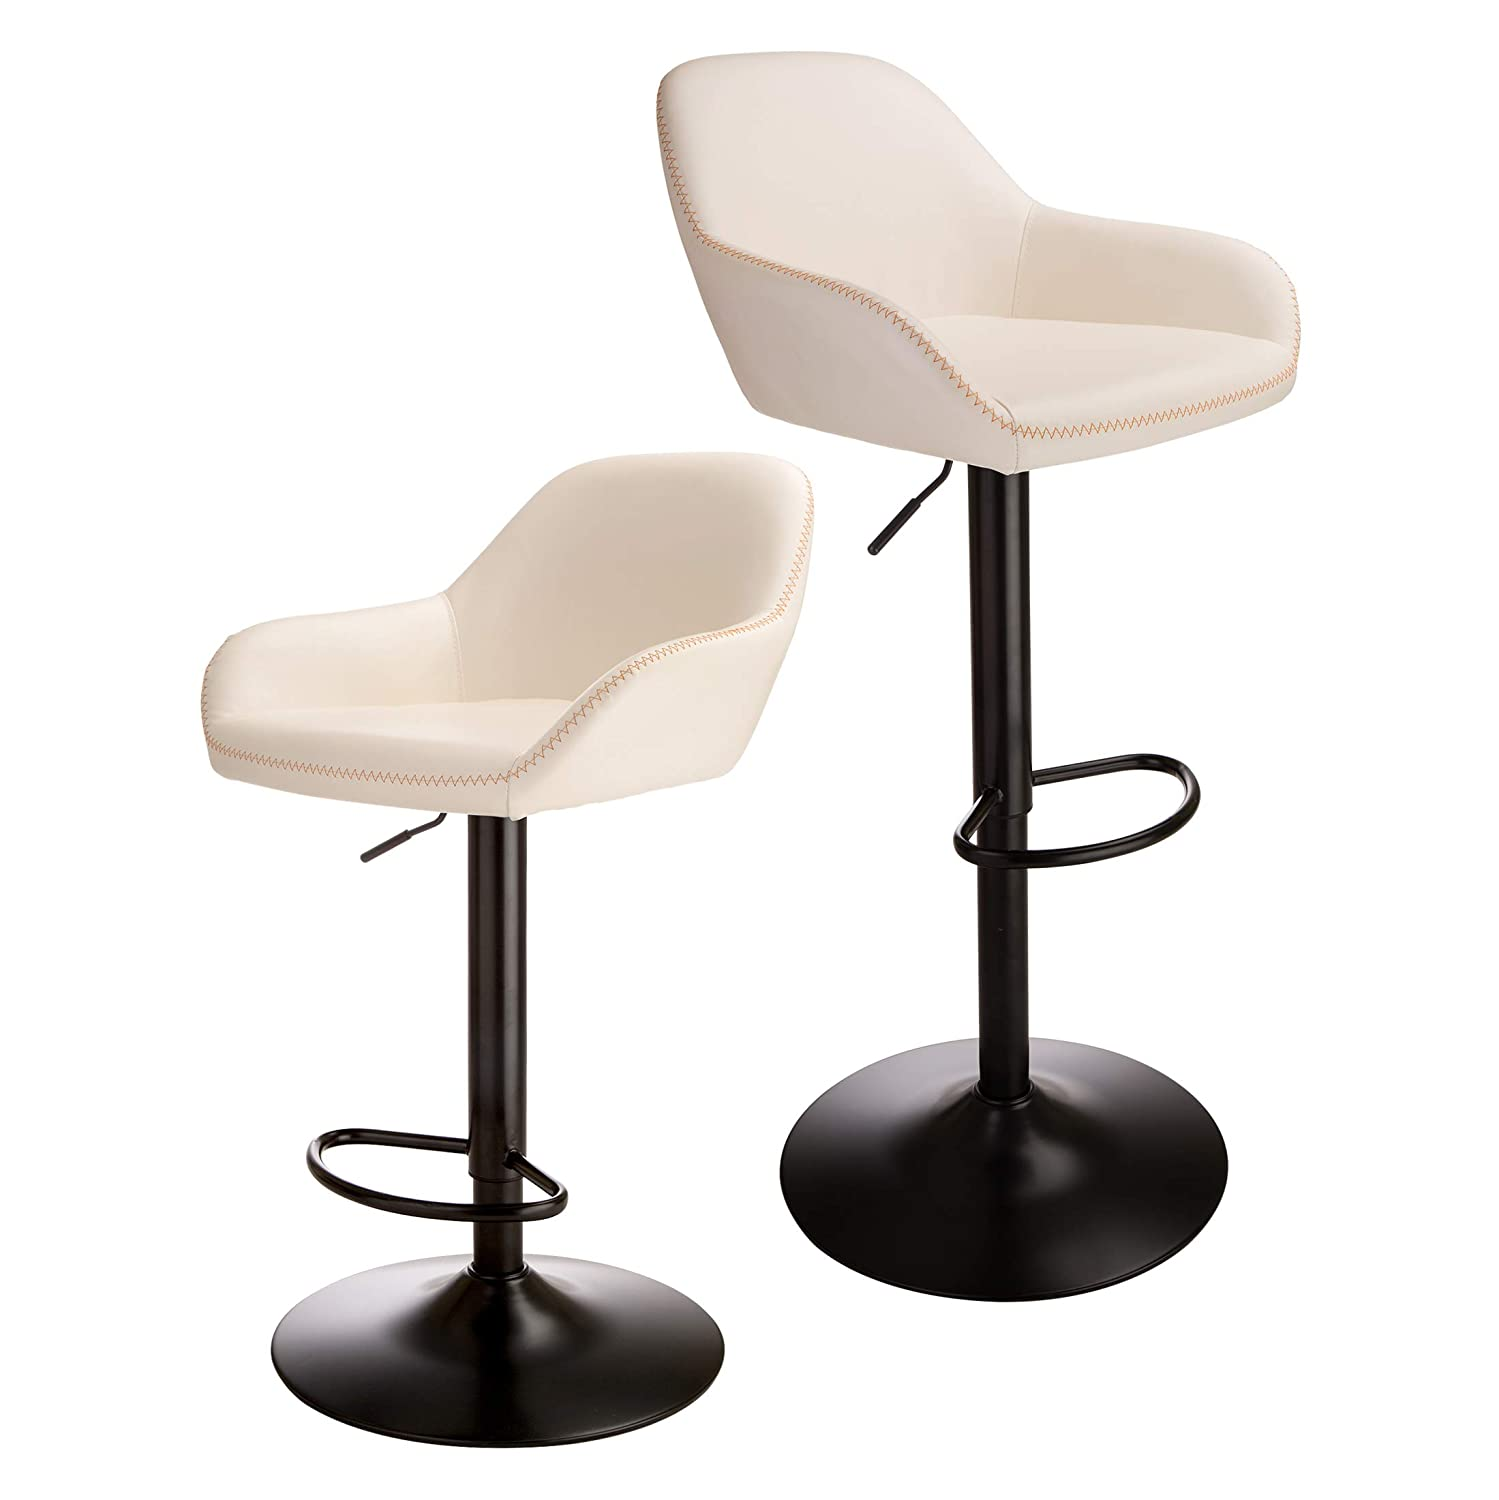 Glitzhome Mid-Century Bar Stool with Back Support Adjustable Leather Counter Height Home Swivel Bar Stools Dining Chair Milk Set of 2